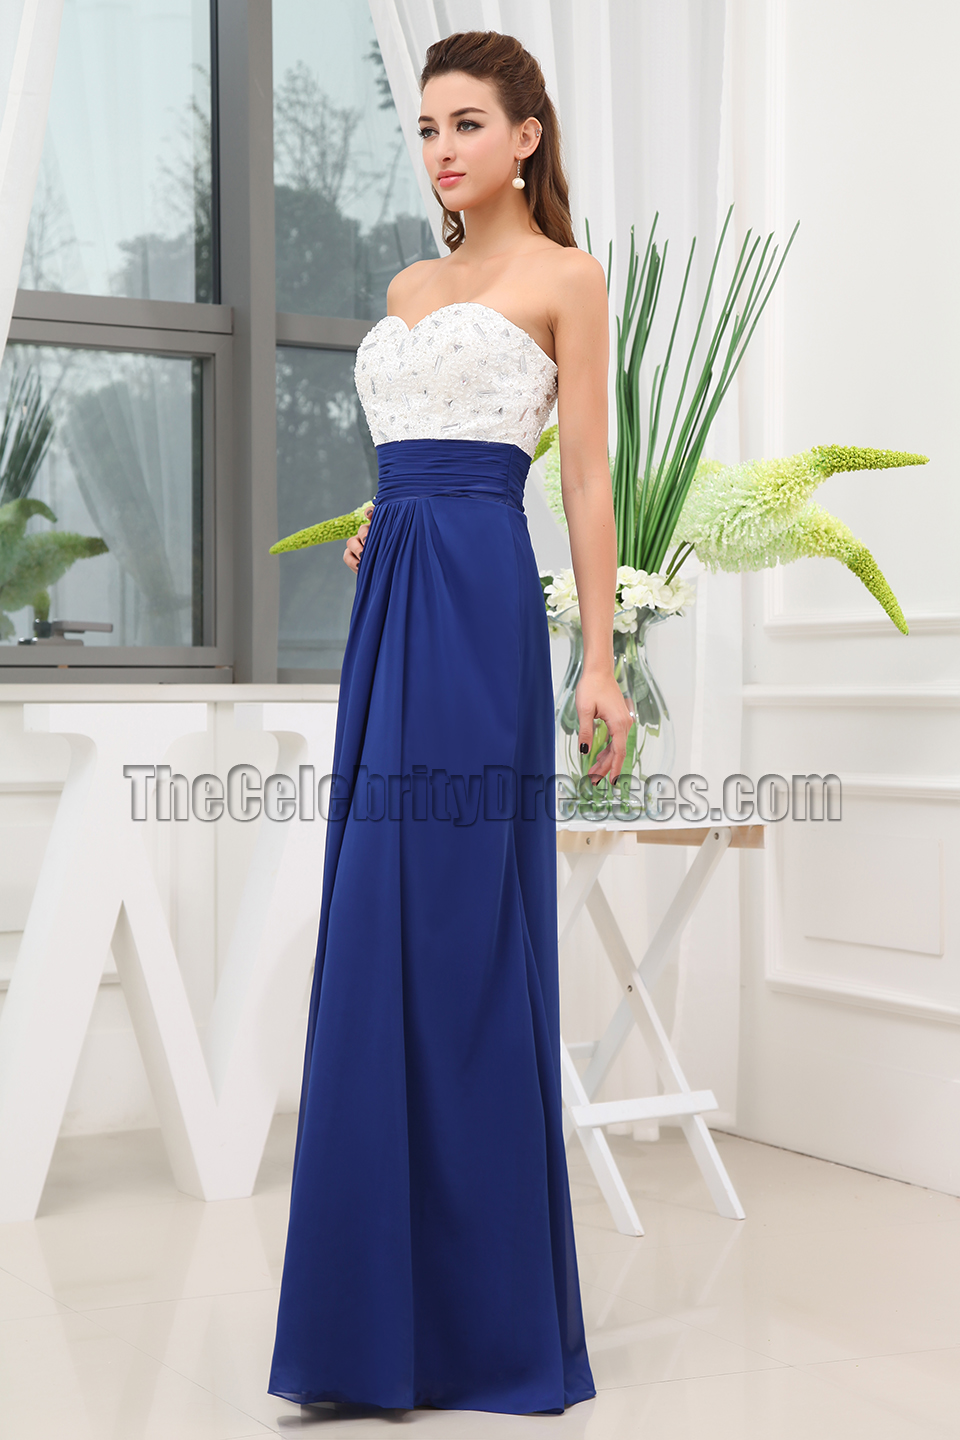 Strapless White And Royal Blue Evening Dresses Prom Gown ...